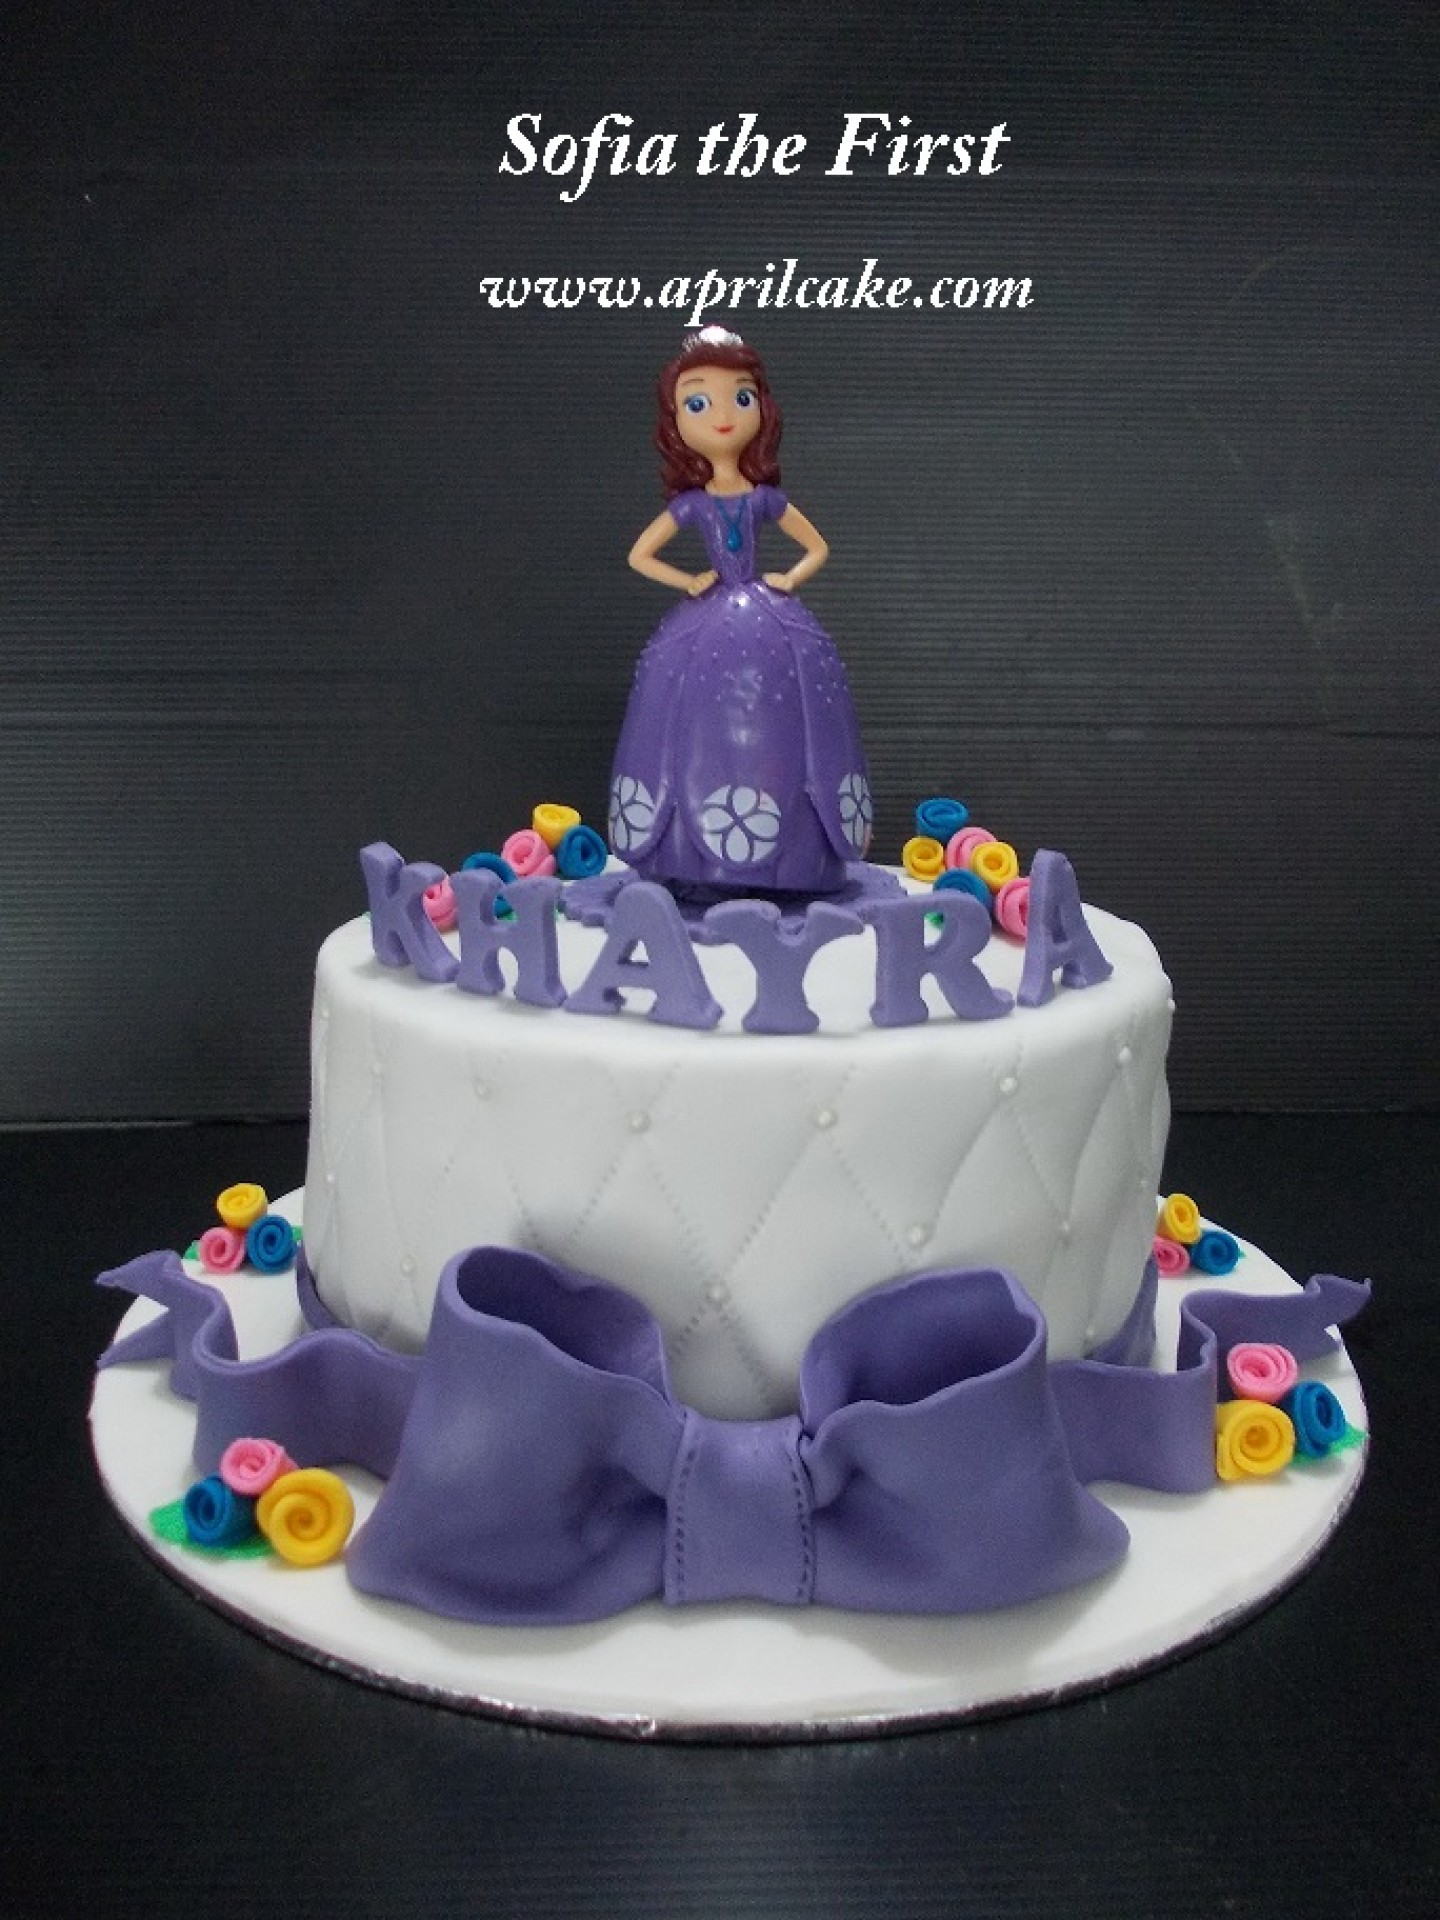 Sofia The First April Cake